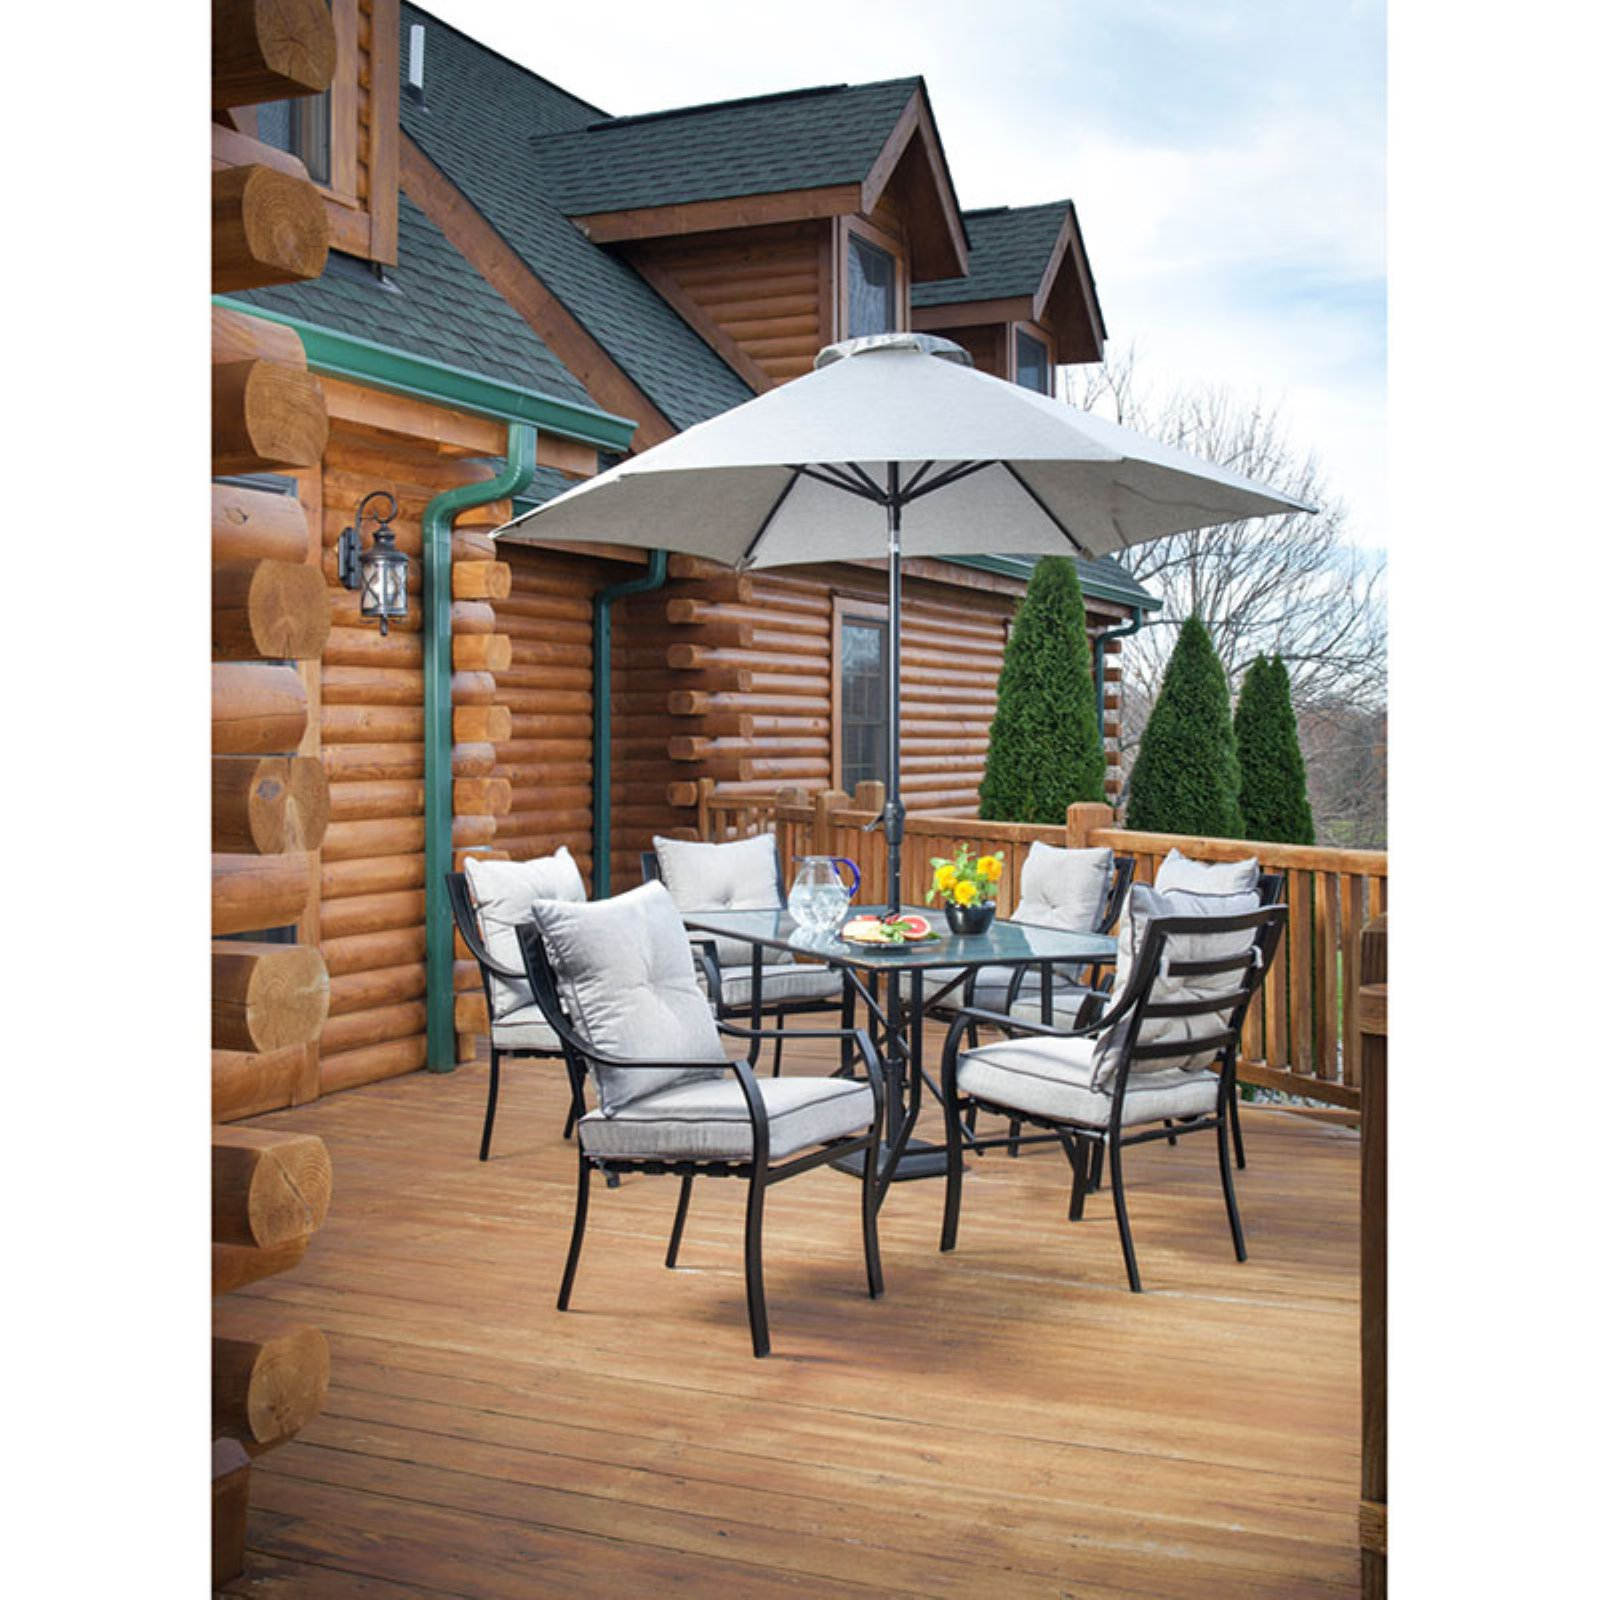 Hanover Umbrella for the Lavallete Outdoor Dining Set